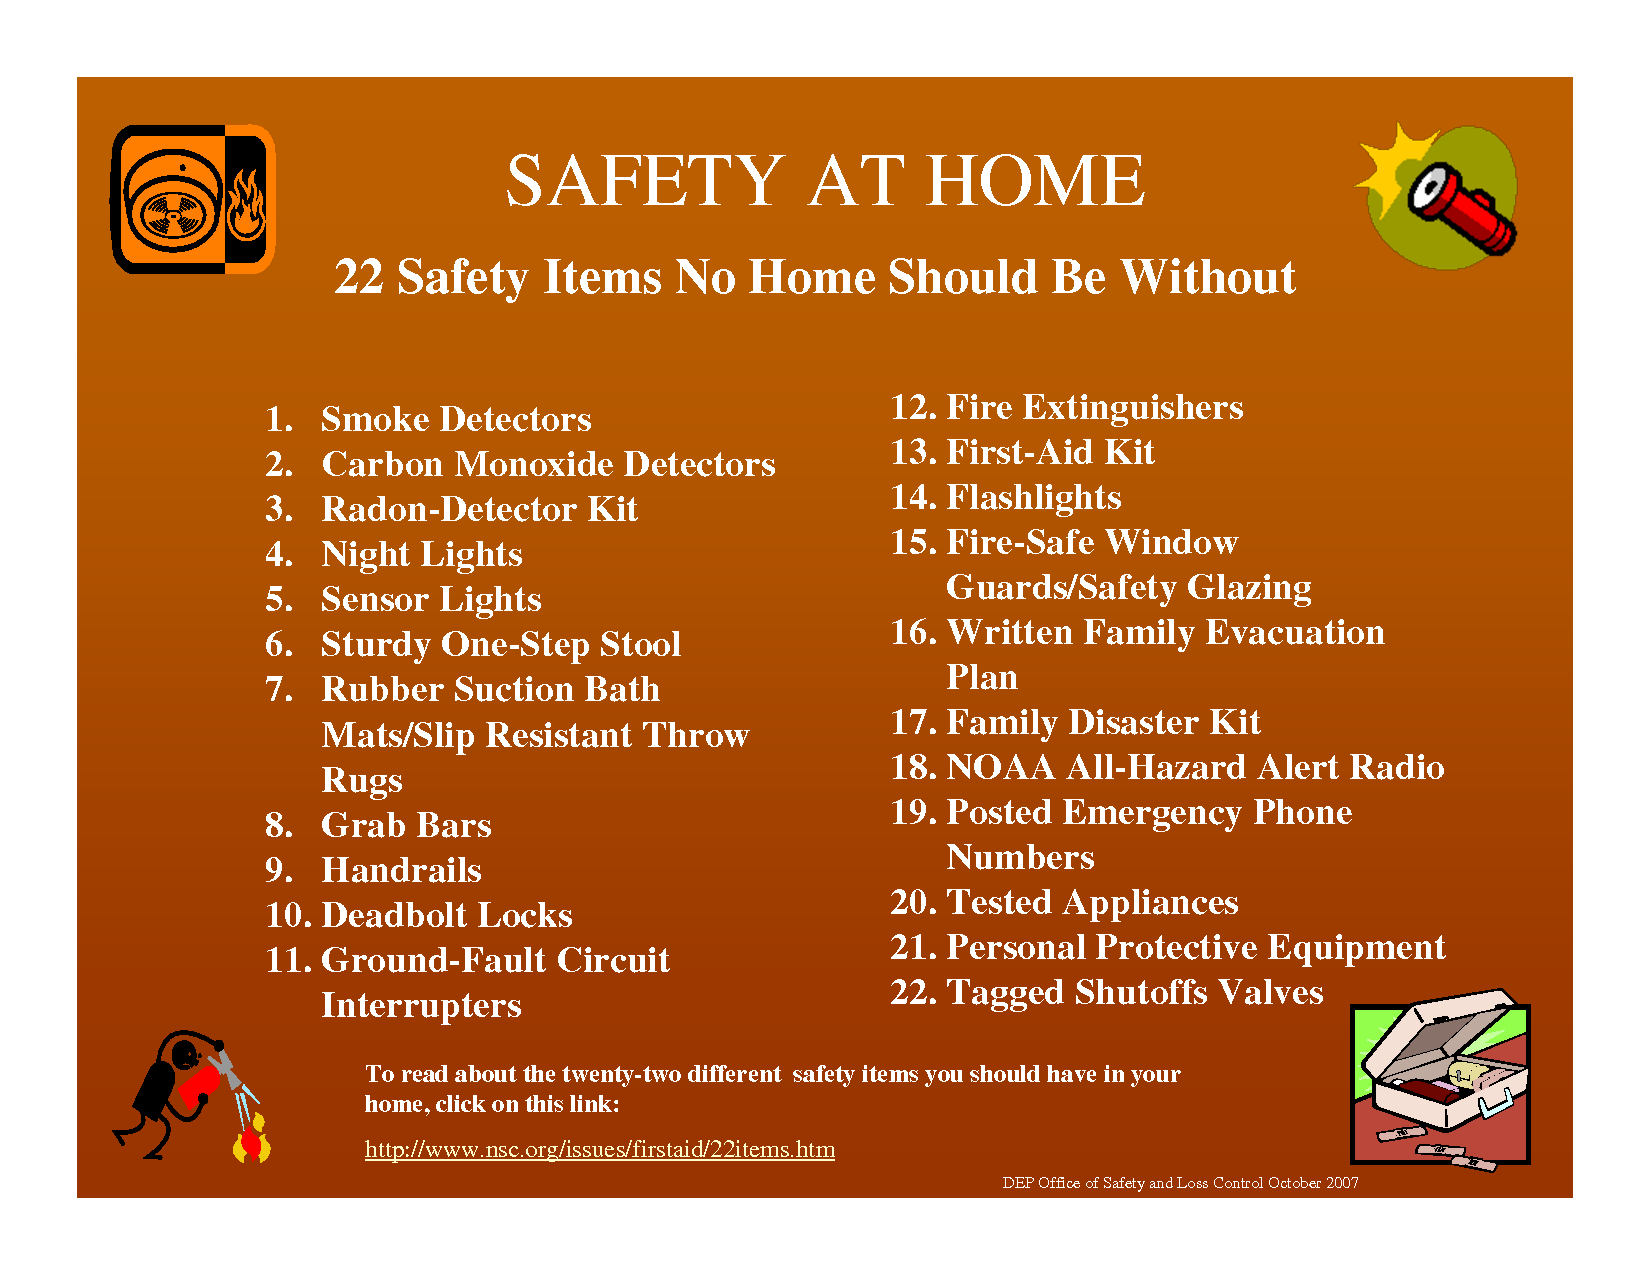 22 Safety Items No Home Should Be Without